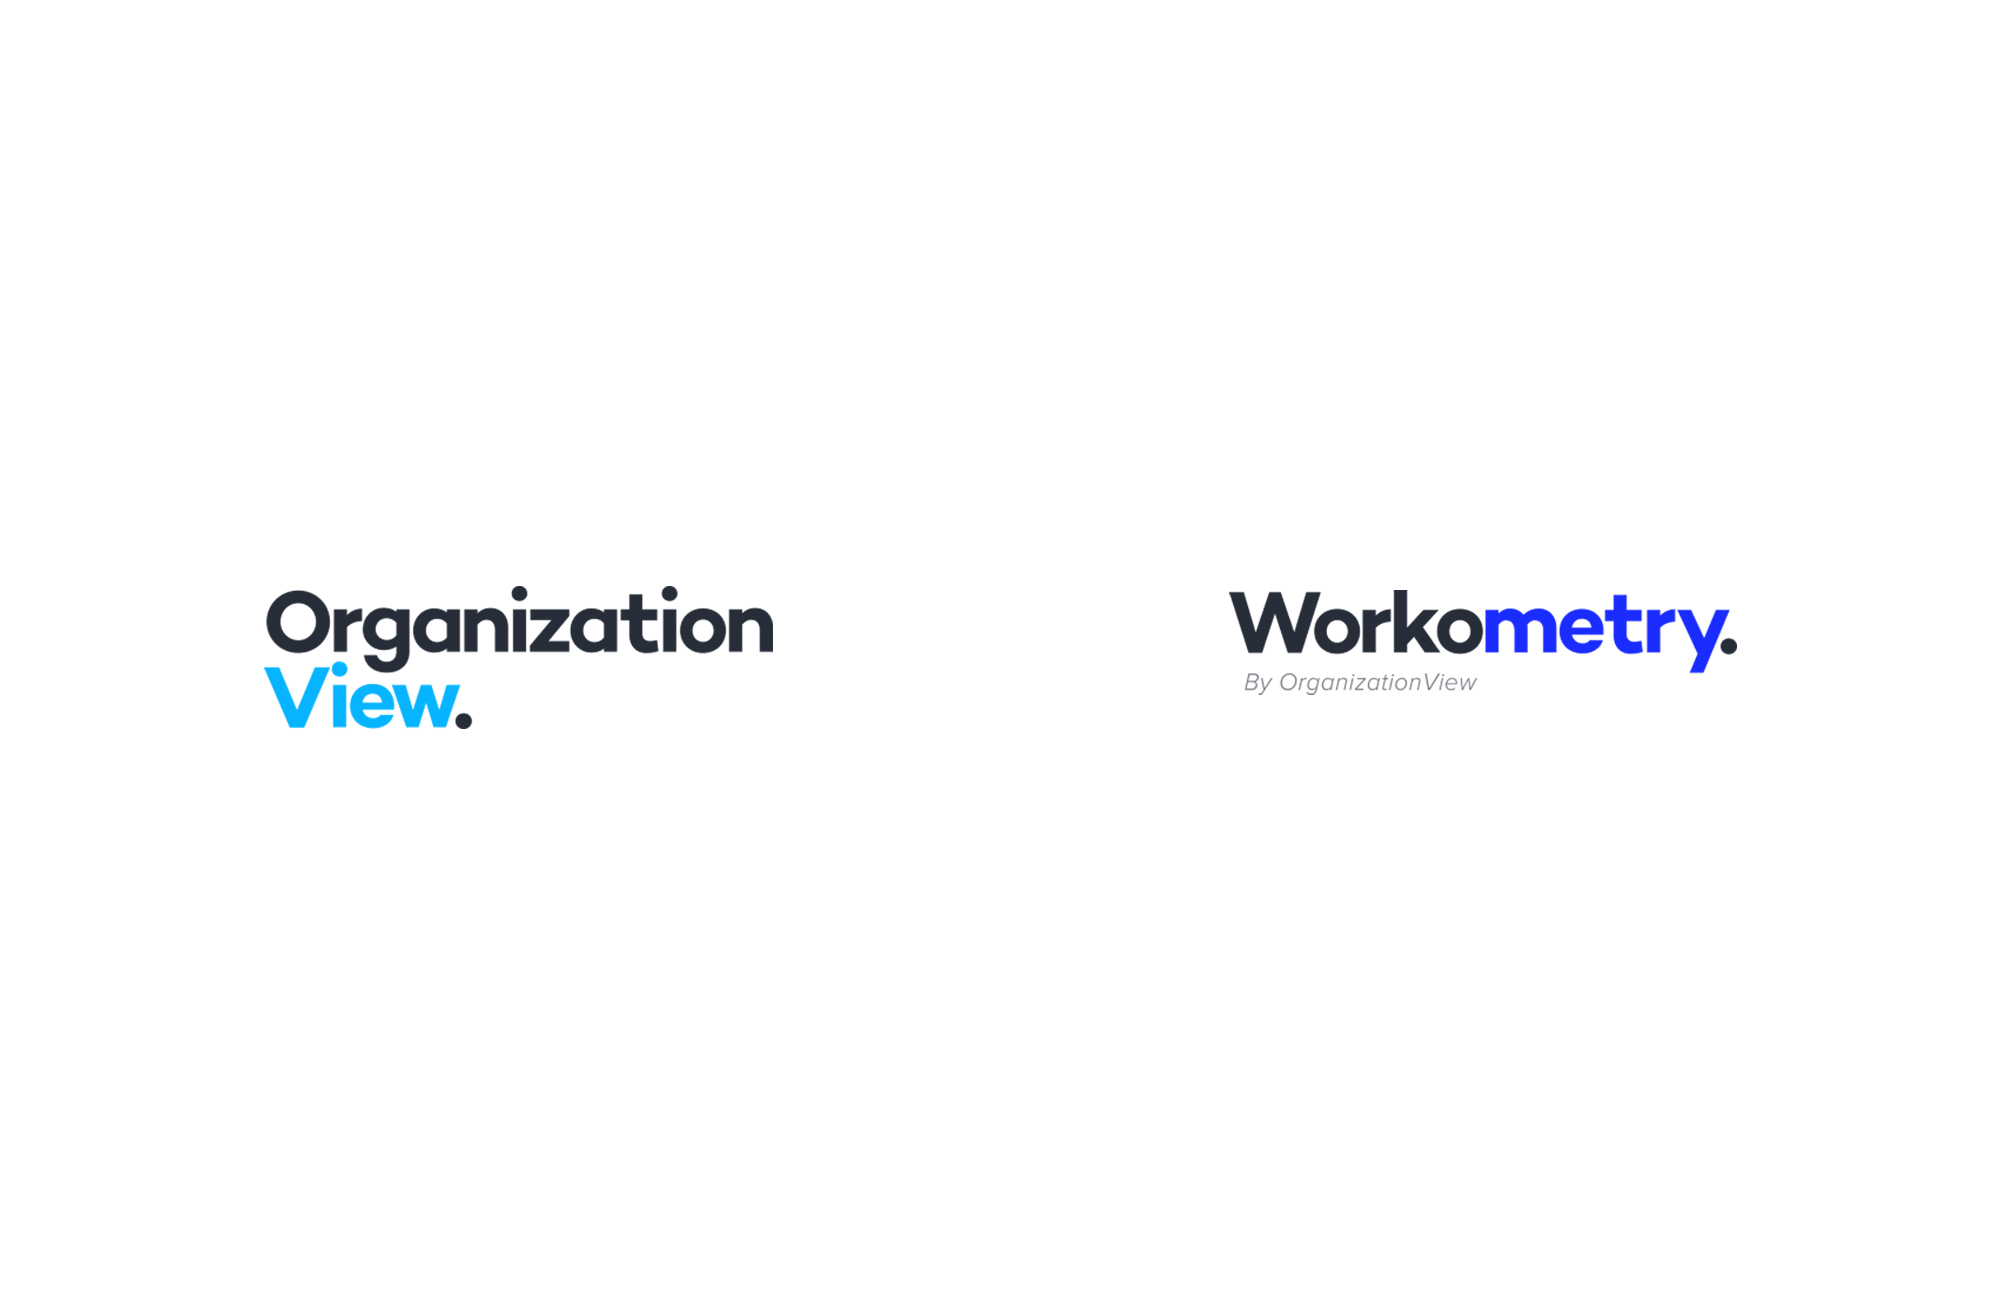 Organization_View_Logo_Development12.jpg